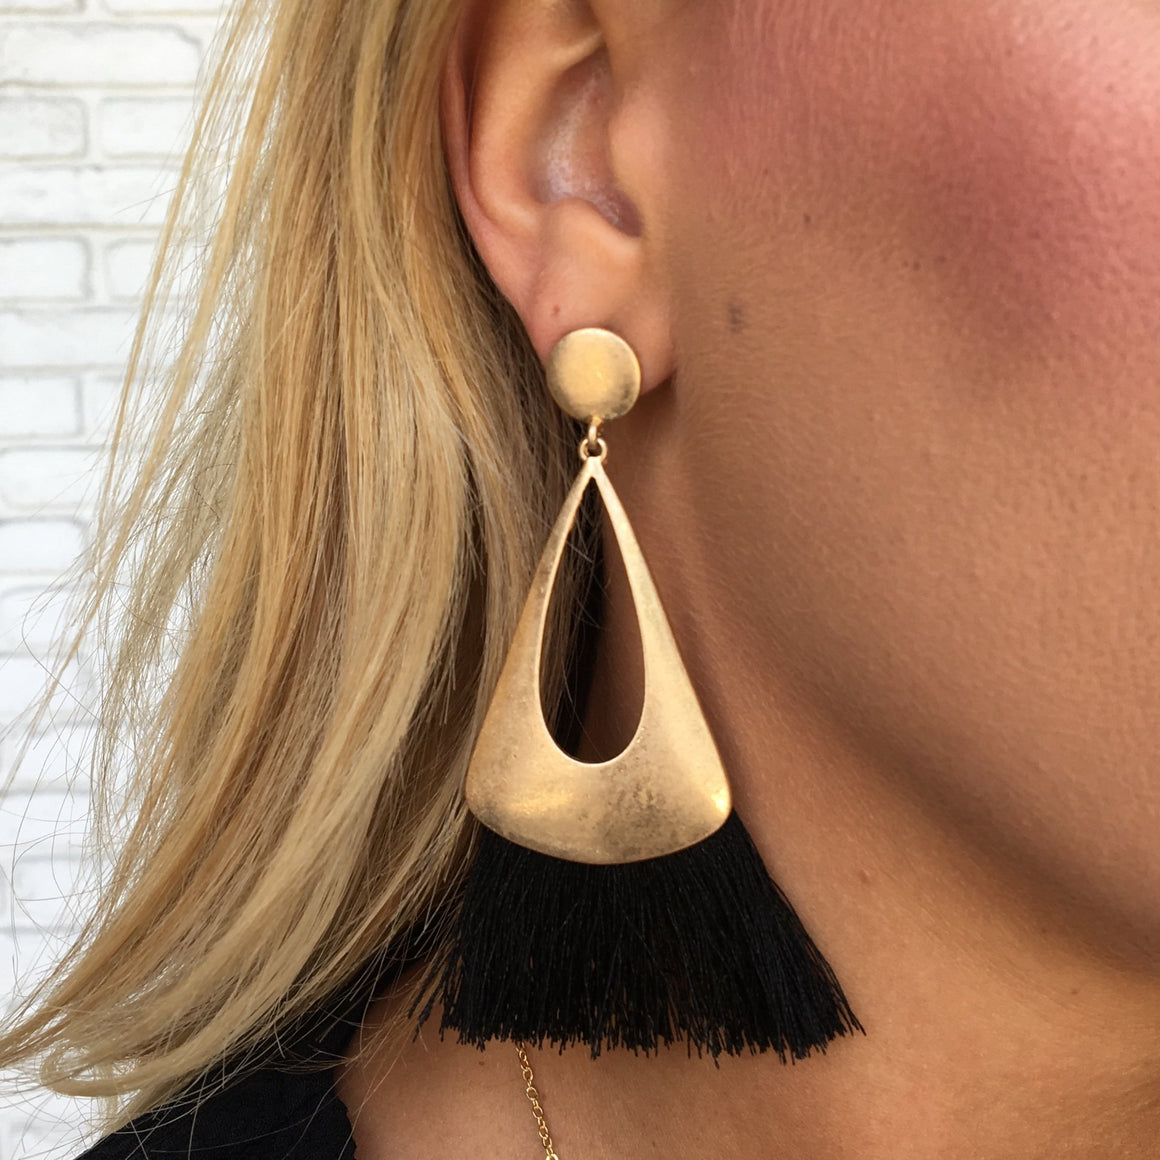 All About The Fringe Earrings in Gold & Black - Dainty Hooligan